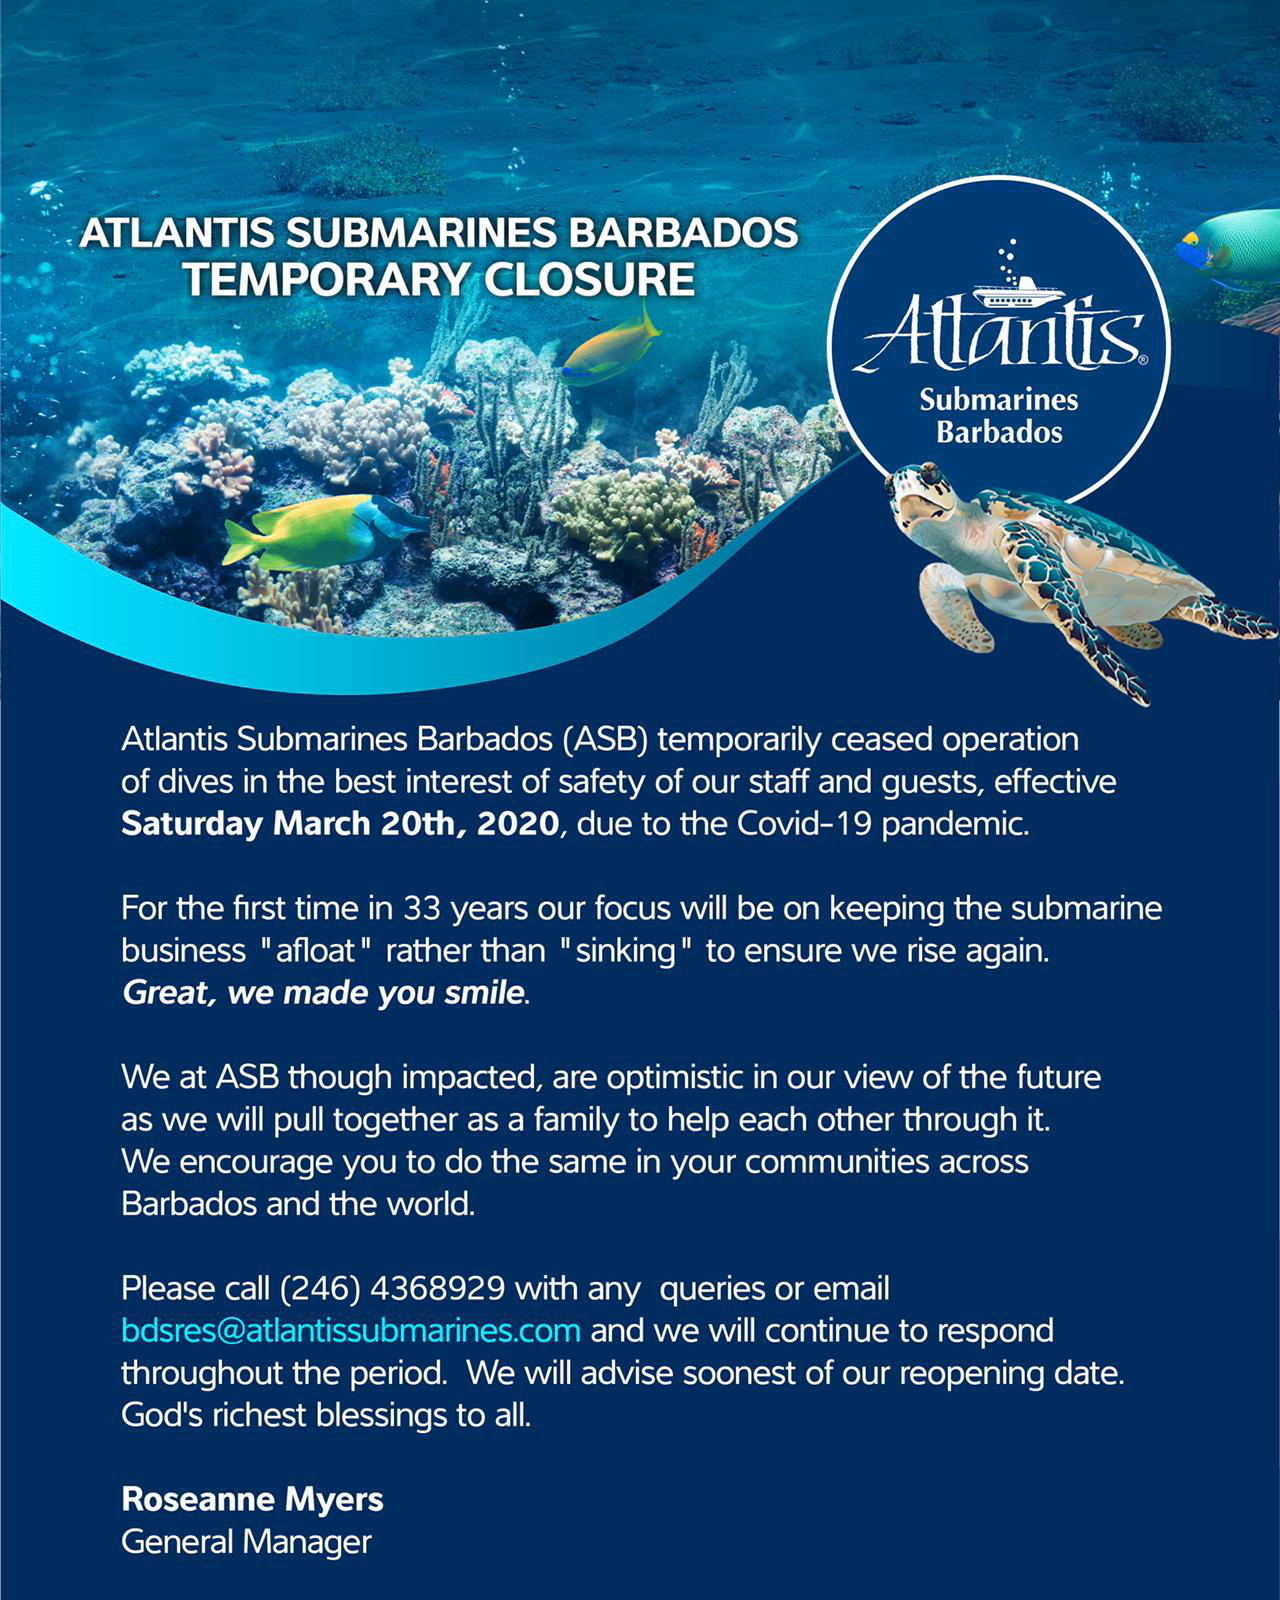 Atlantis Submarine Barbados Temporary Closure Amid COVID-19